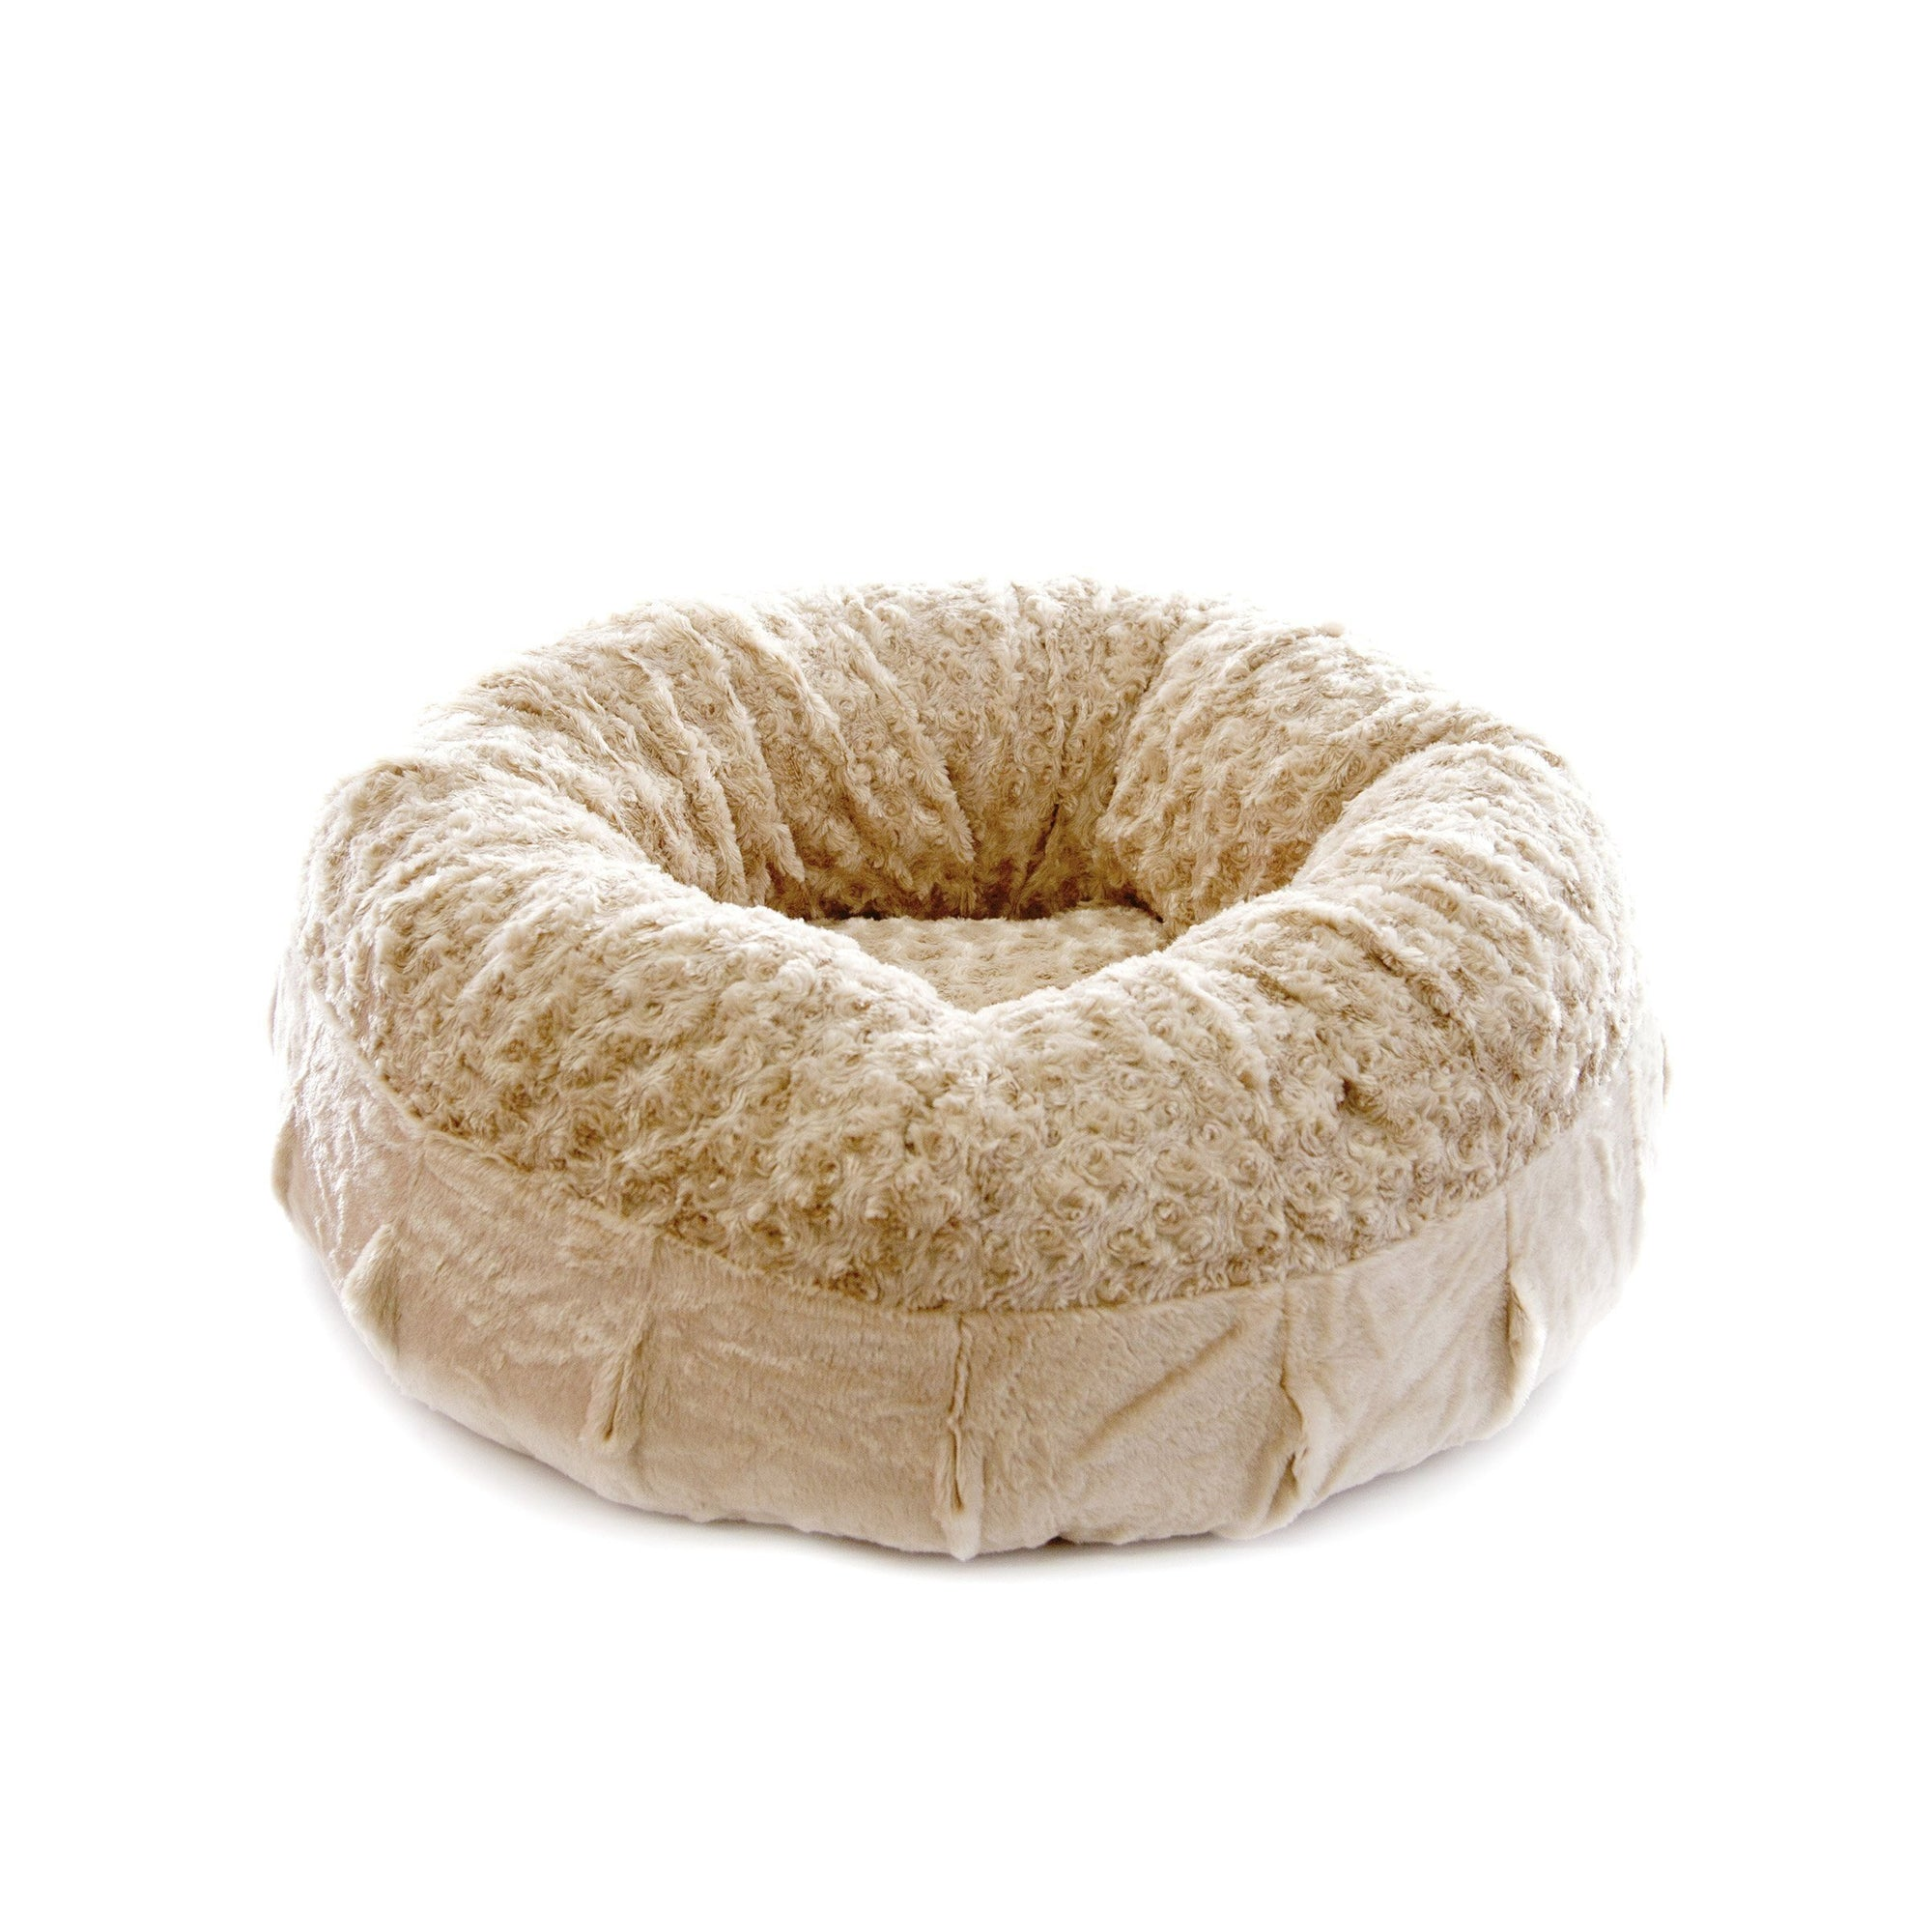 stylish kona dogs bolster small fabric cave designer base beds luxury elegant bed products for herringbone owners and dog with cream in leather trim side